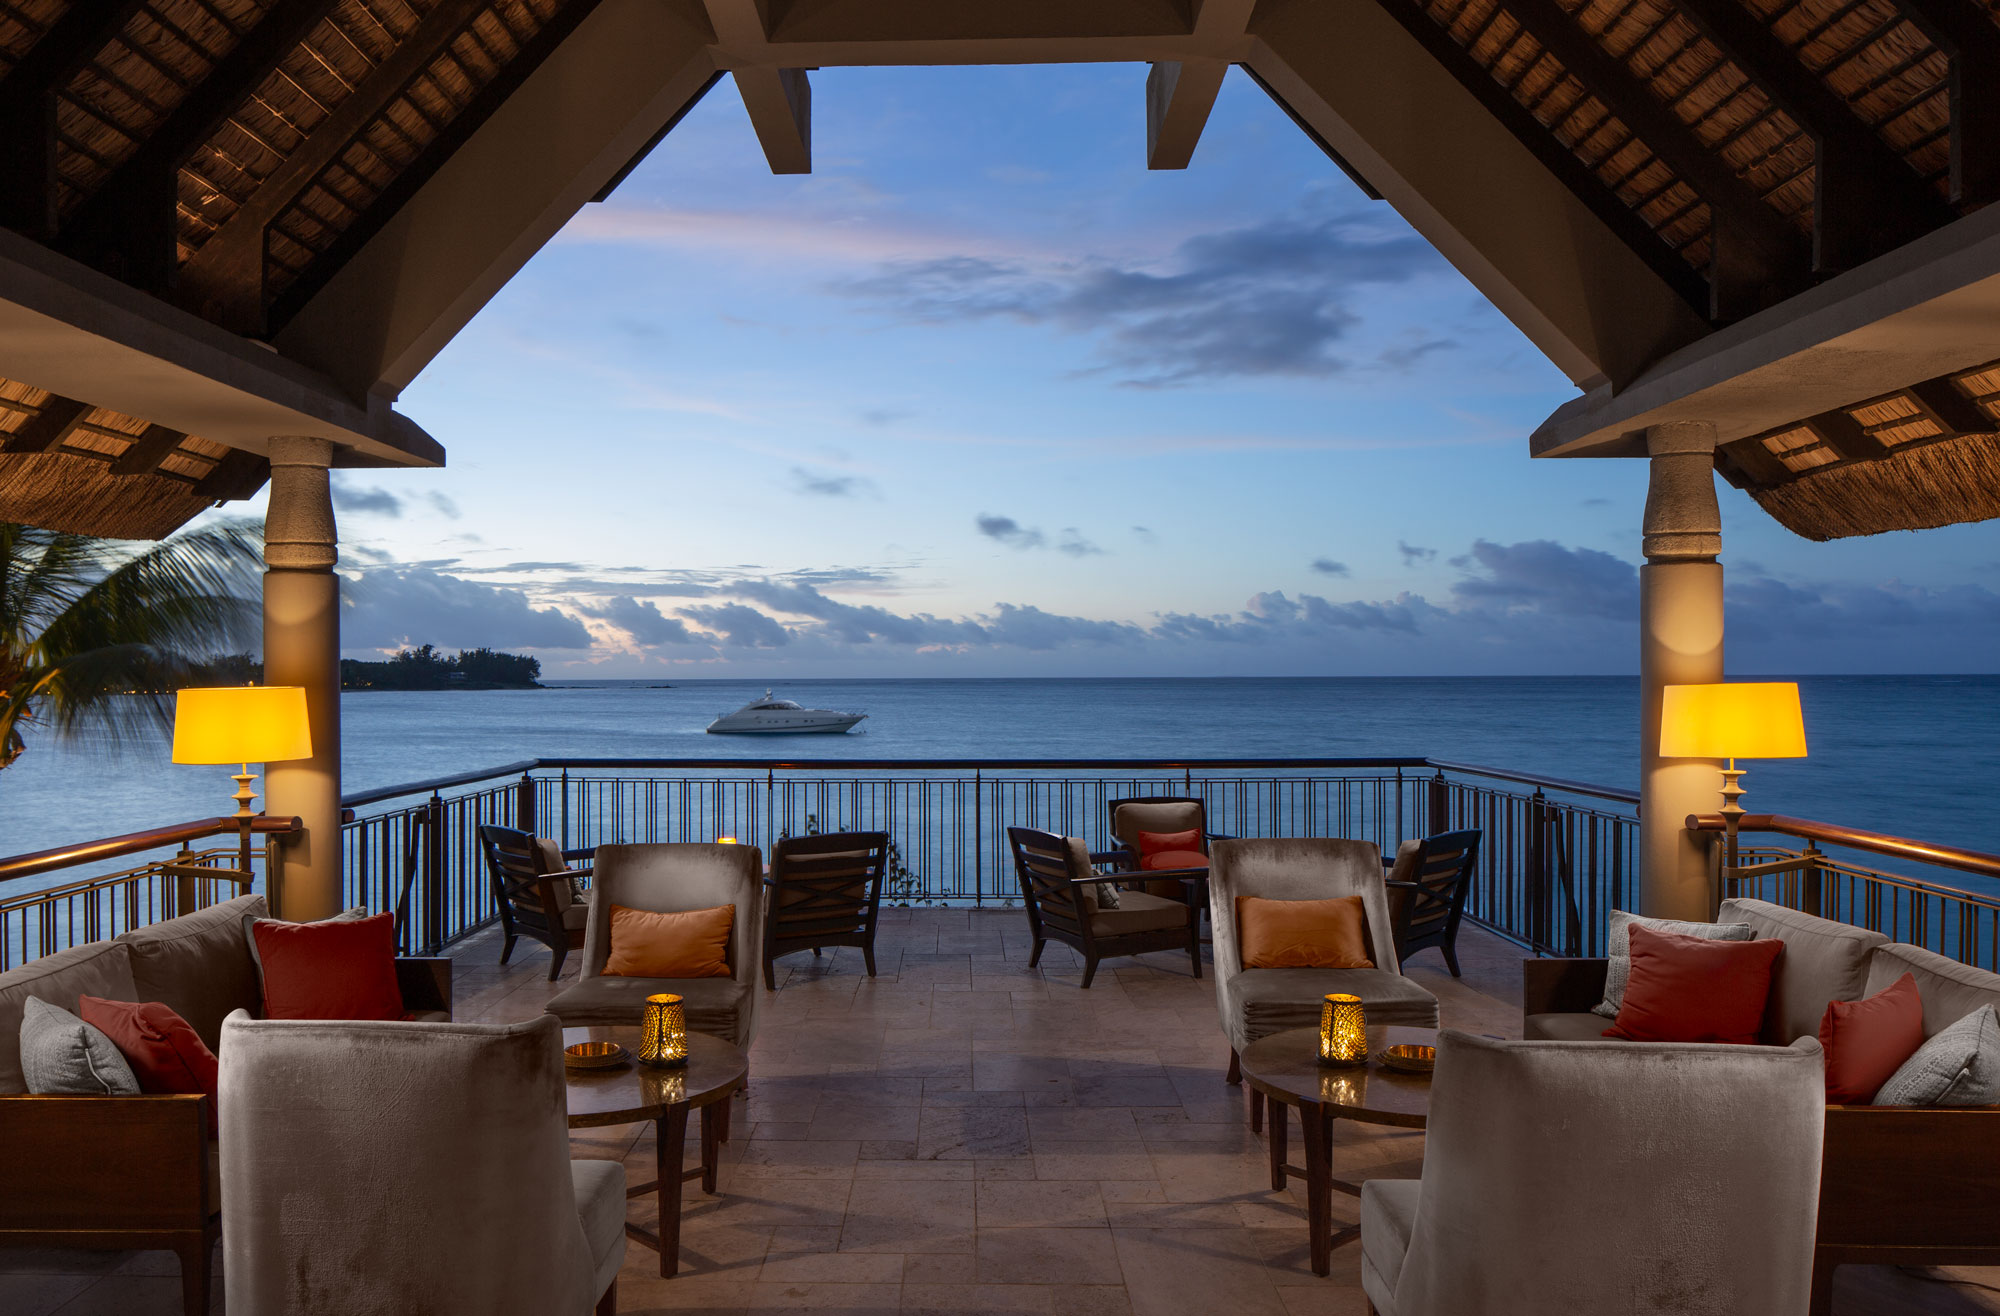 Luxury bar Mauritius - hotel resort sunset photography Adrian Kilchherr